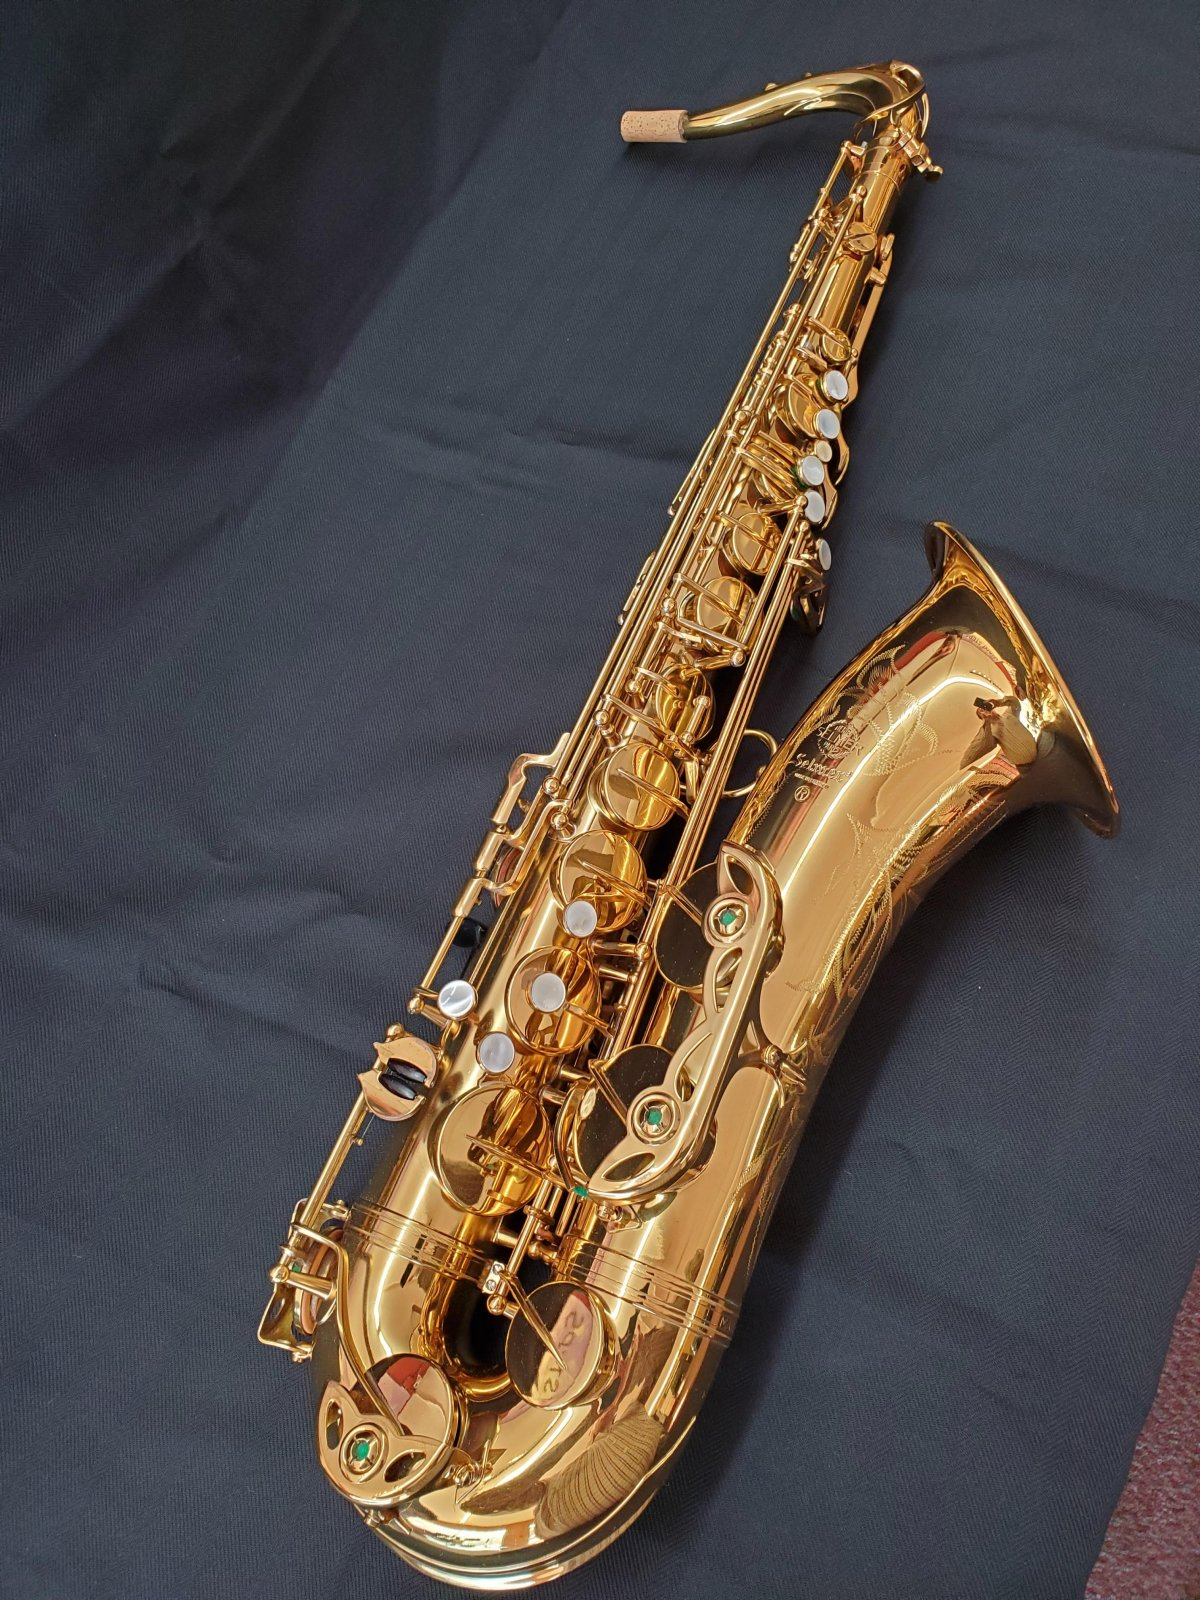 **WOW!** Vintage Selmer Mark VI Model 54 Tenor Saxophone Original Condition